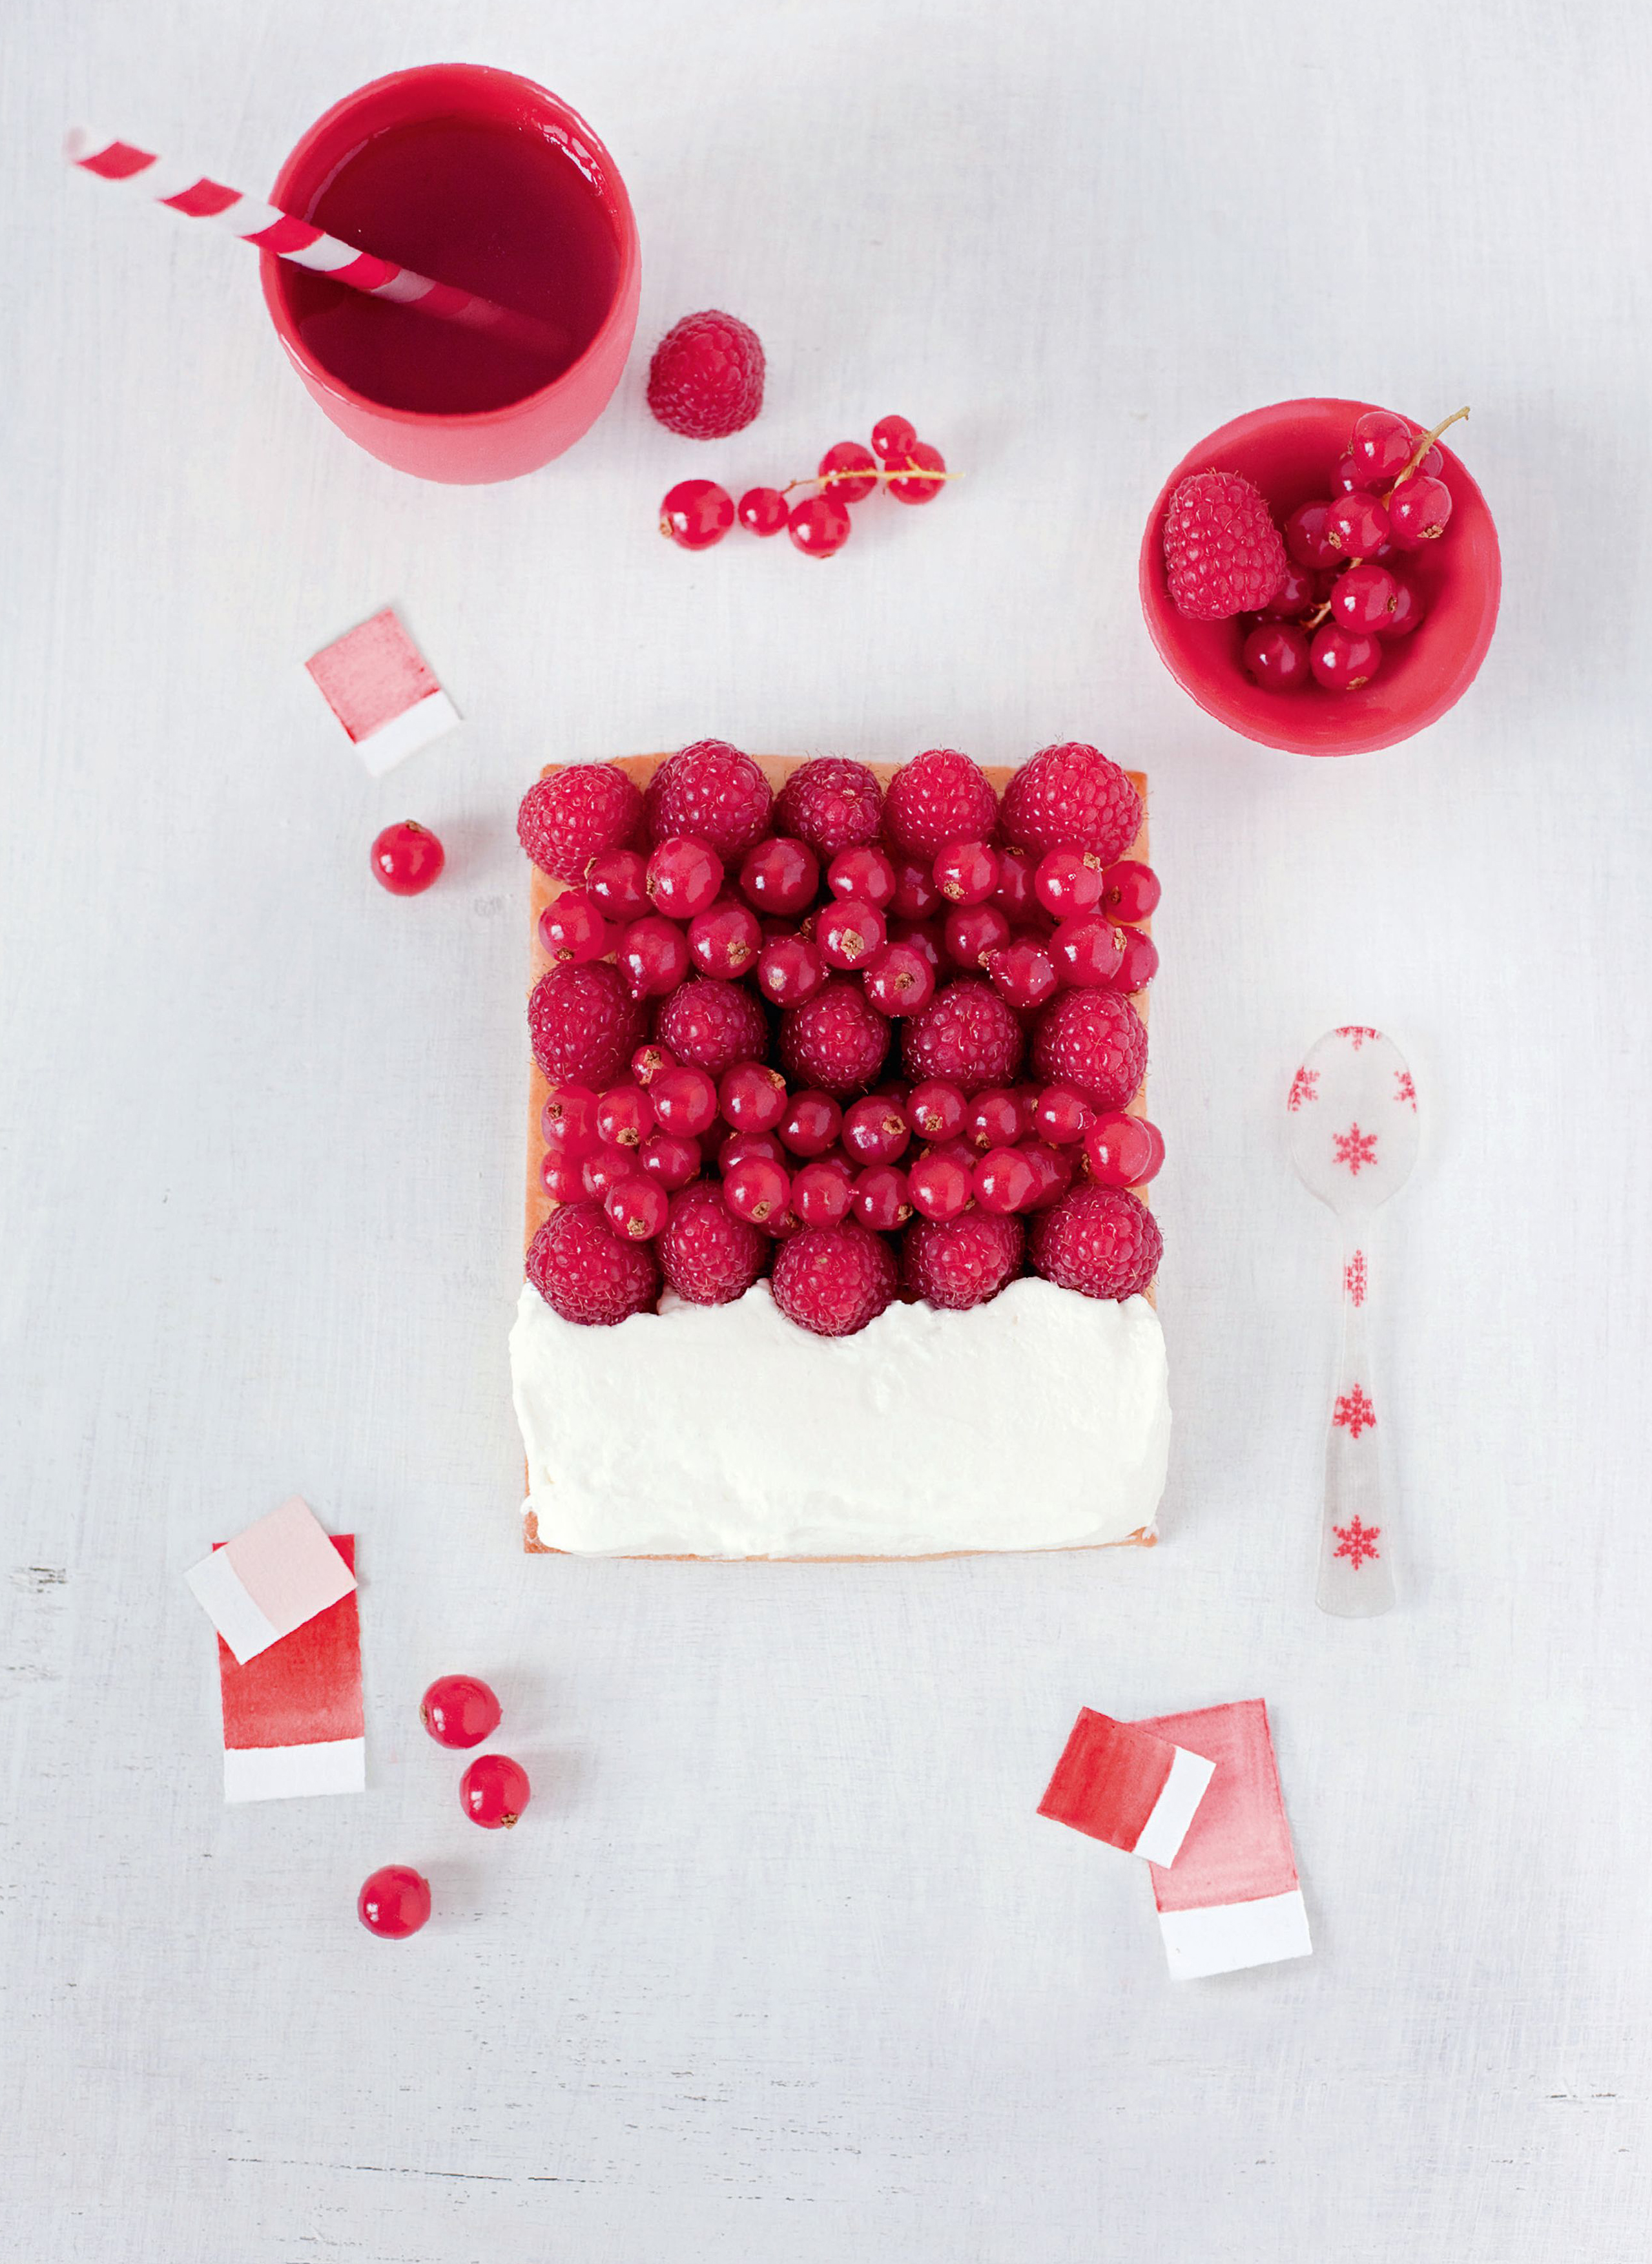 Red fruits – chantilly